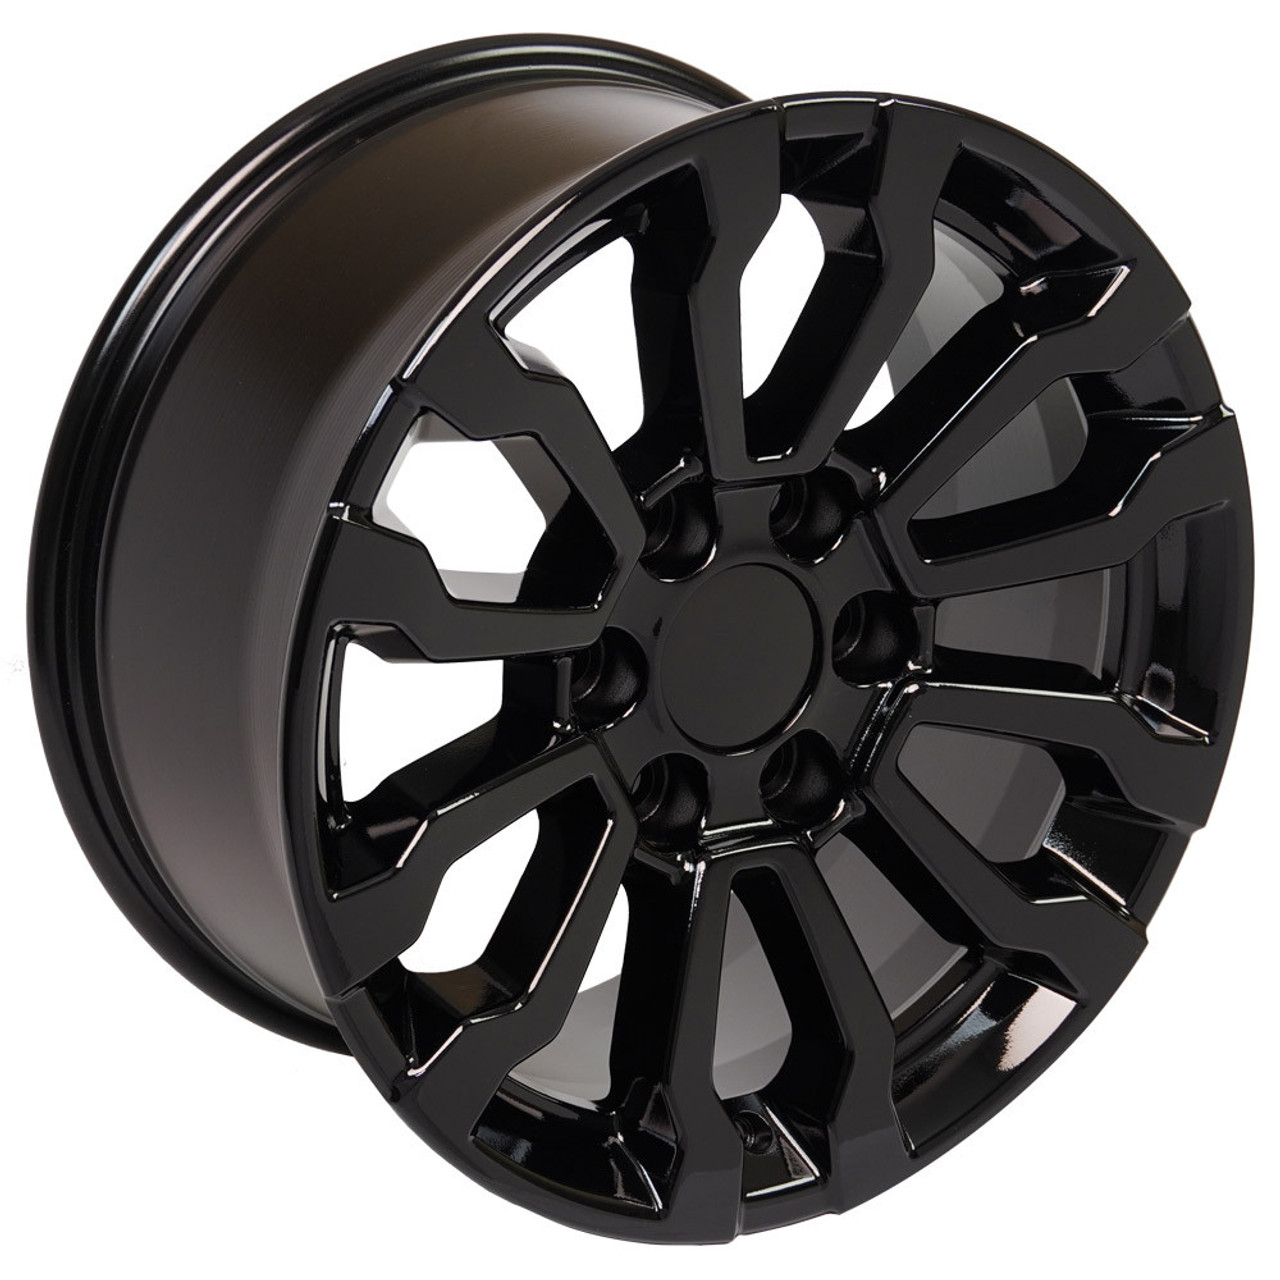 """Gloss Black 18"""" AT4 Style Wheels for Chevy and GMC Trucks and SUVs"""